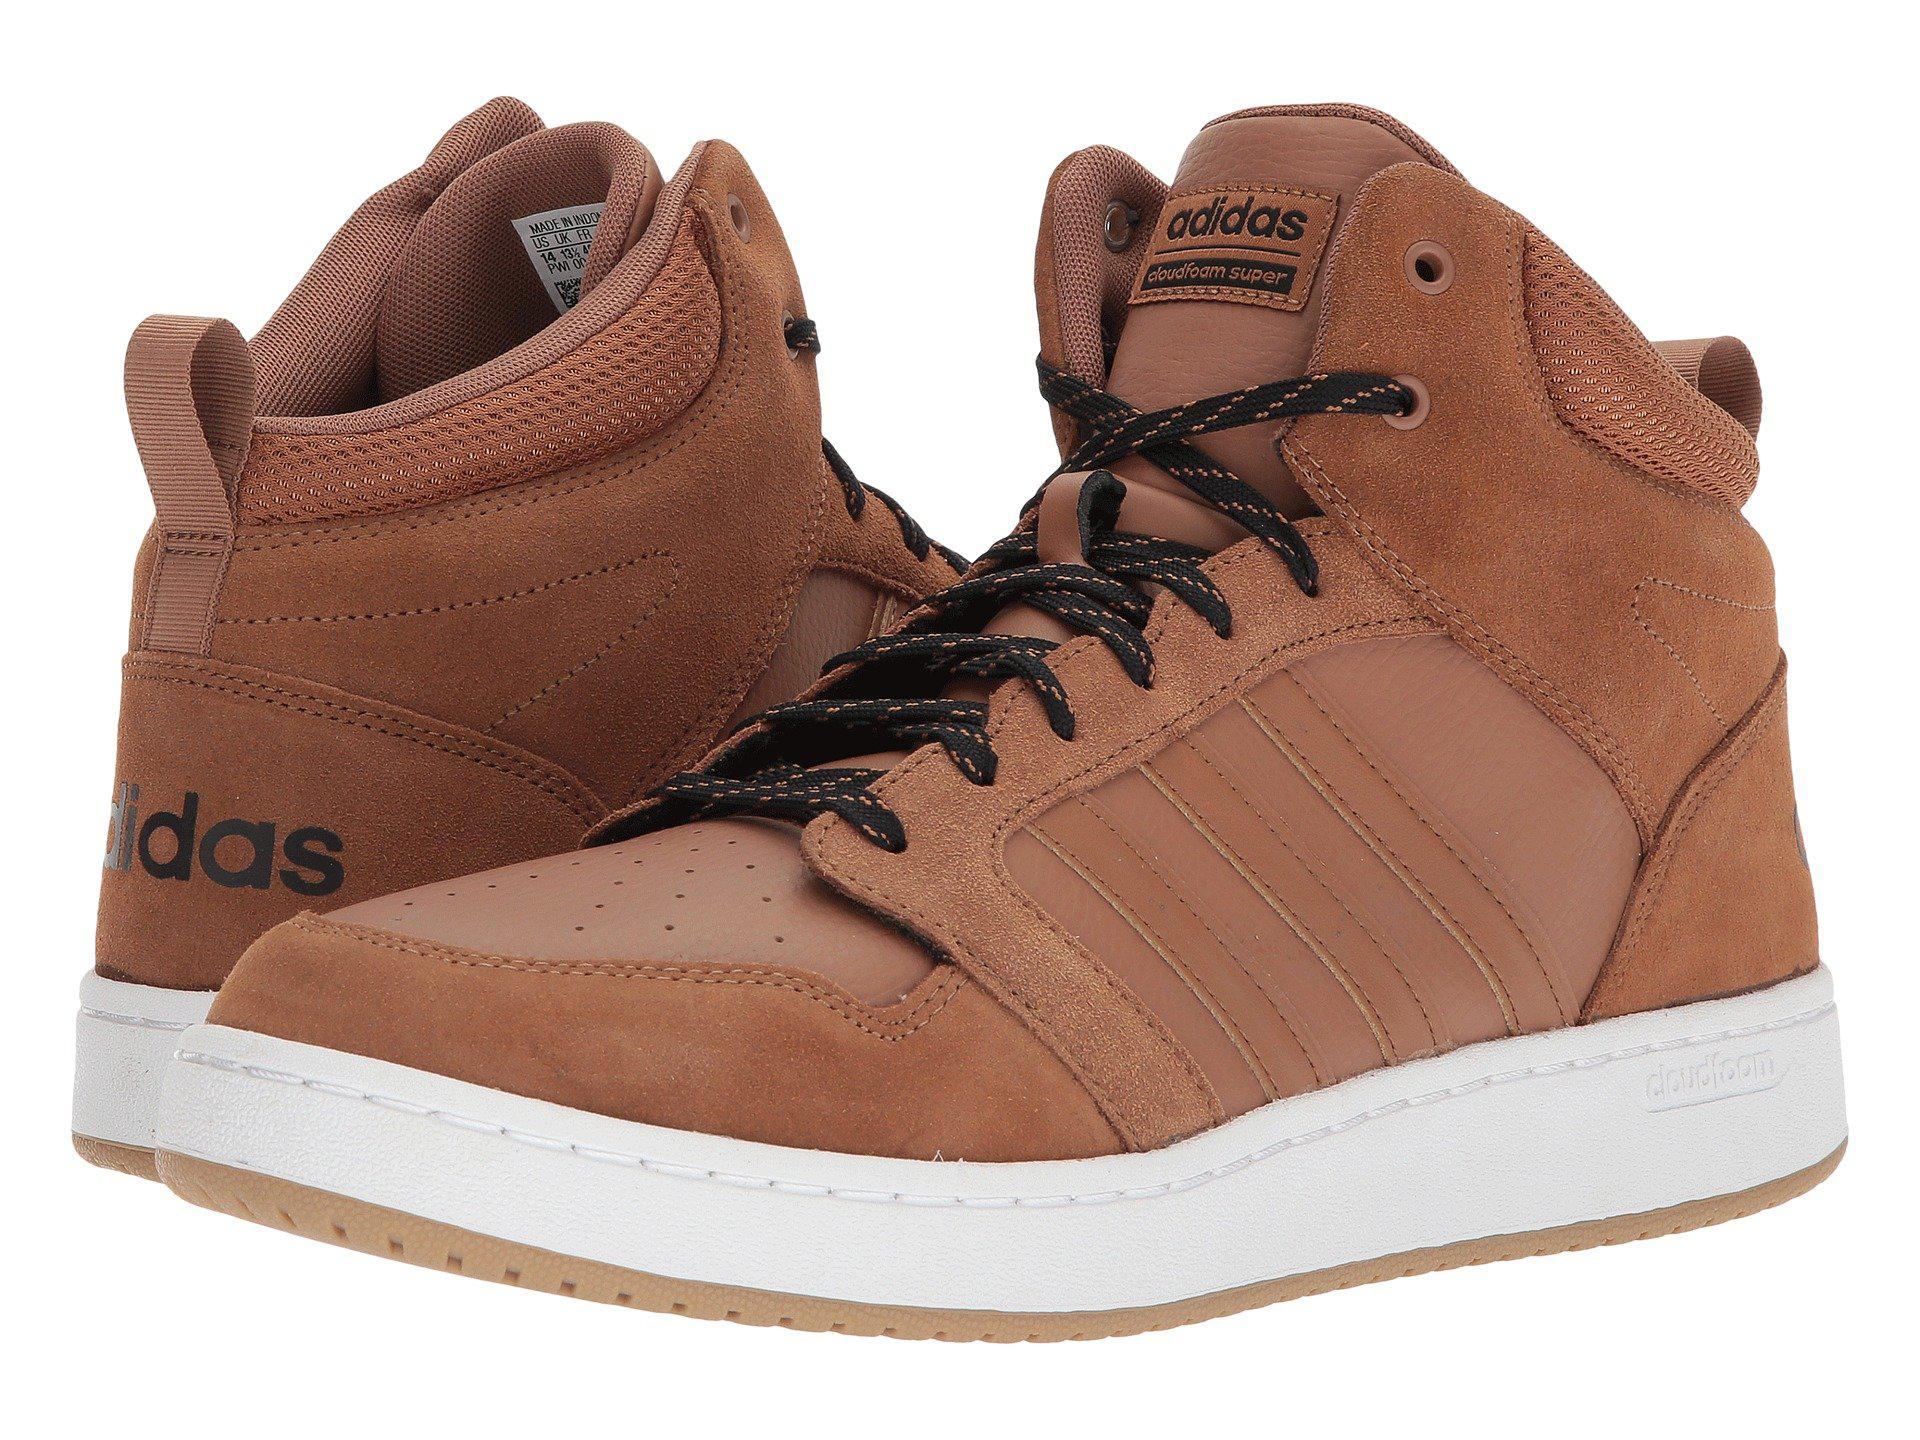 d07927c45ec Lyst - adidas Cloudfoam Super Hoops Mid Basketball Shoe in Brown for Men